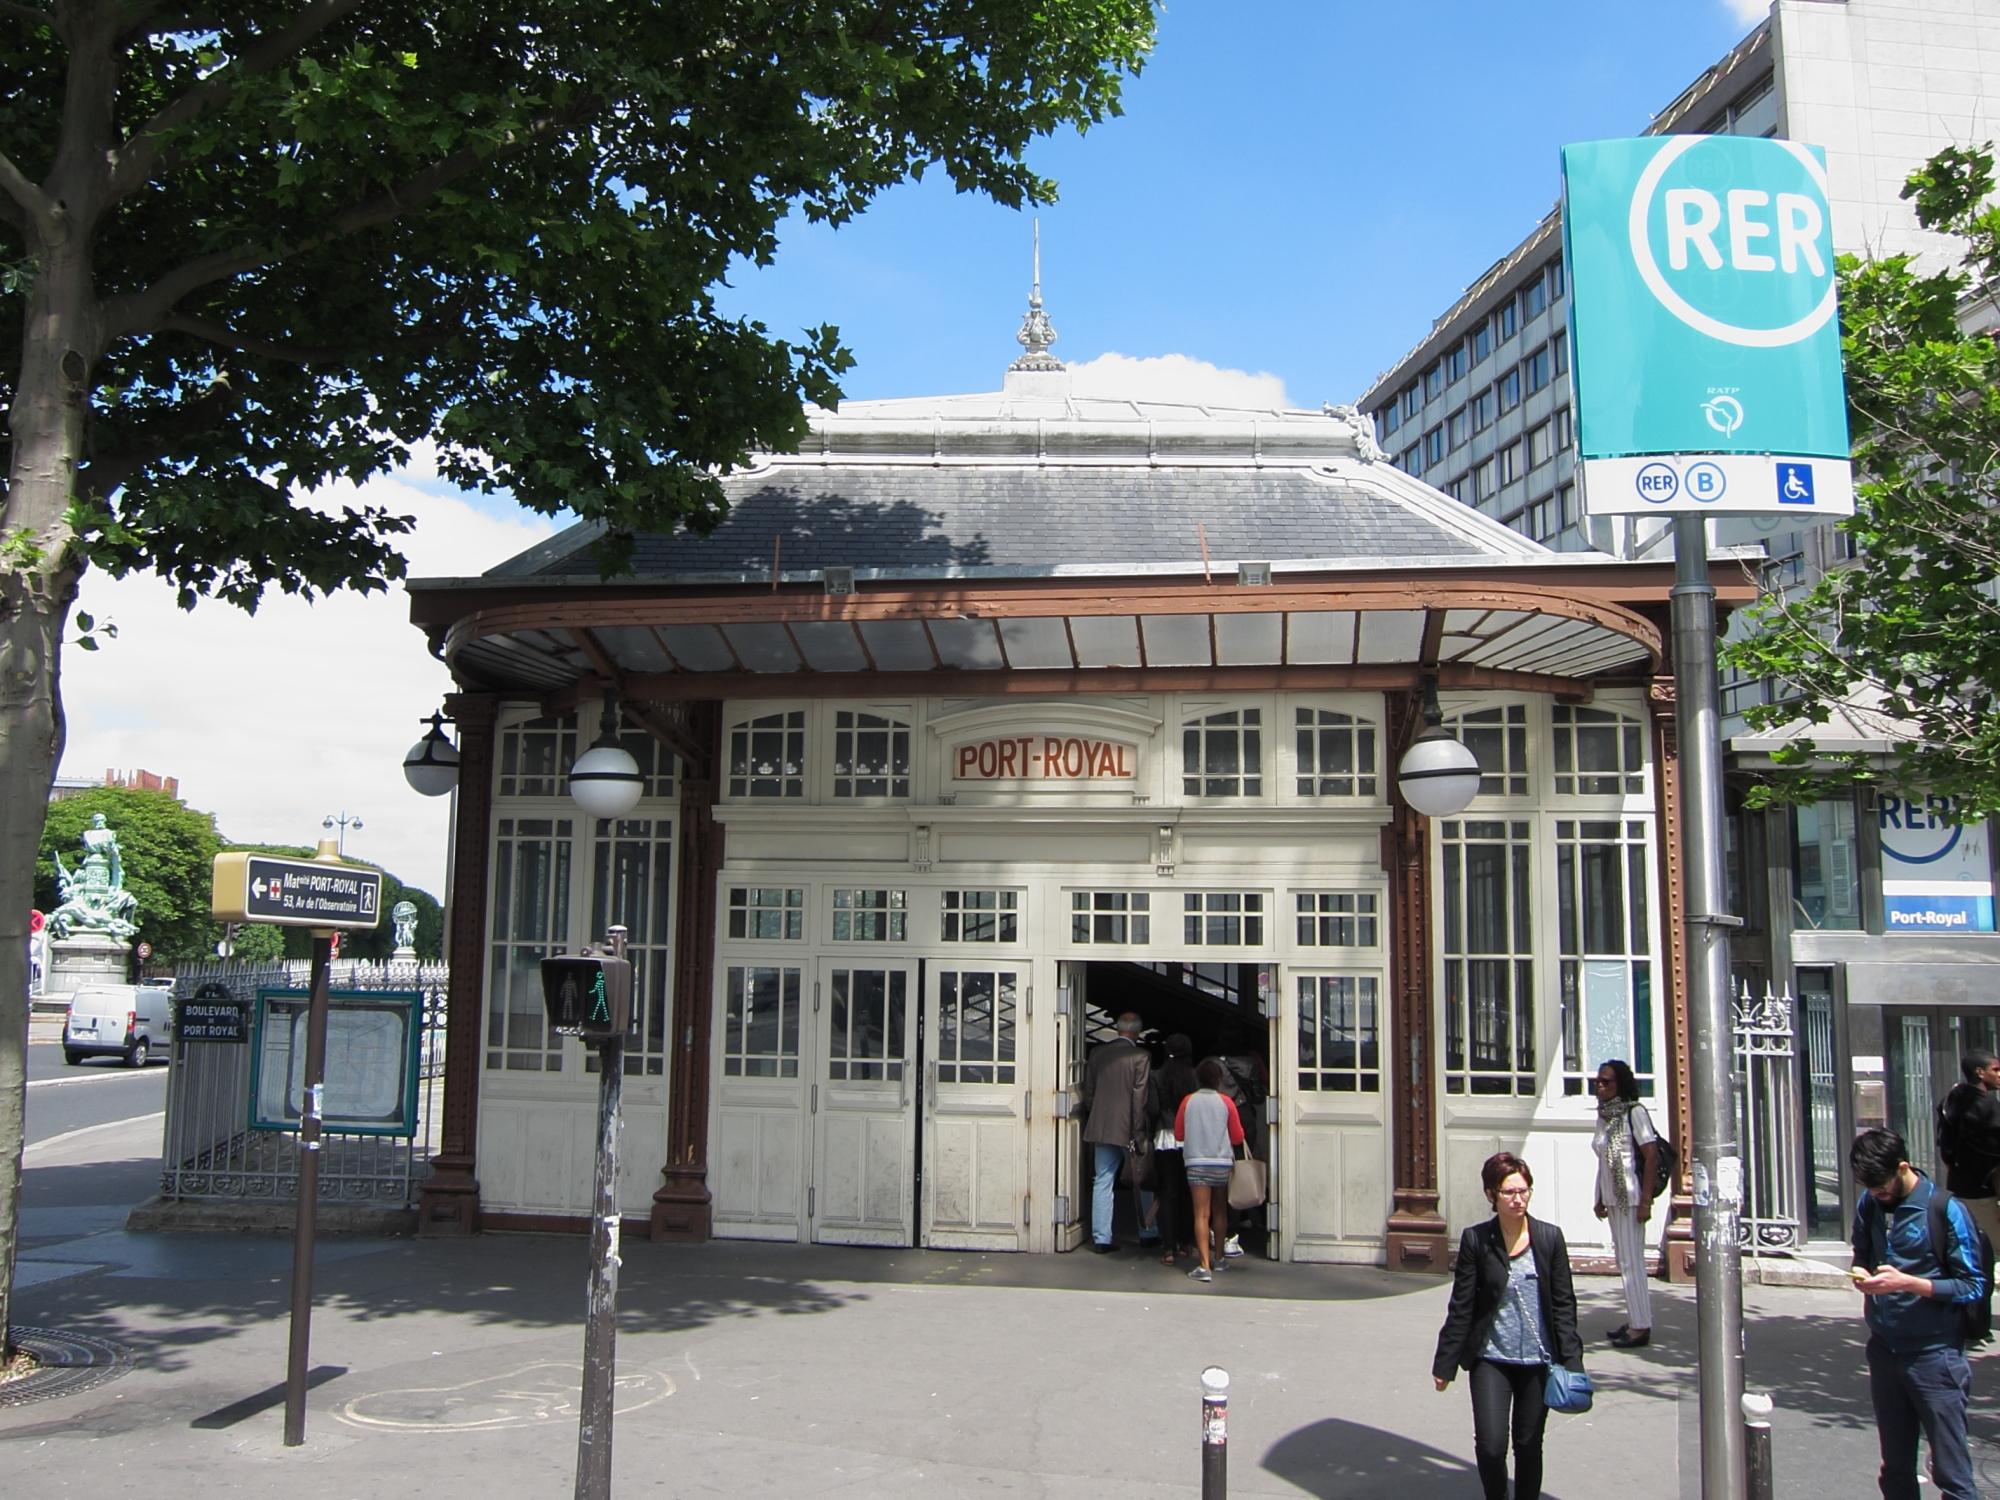 RER (suburban rail) station at Port-Royal.